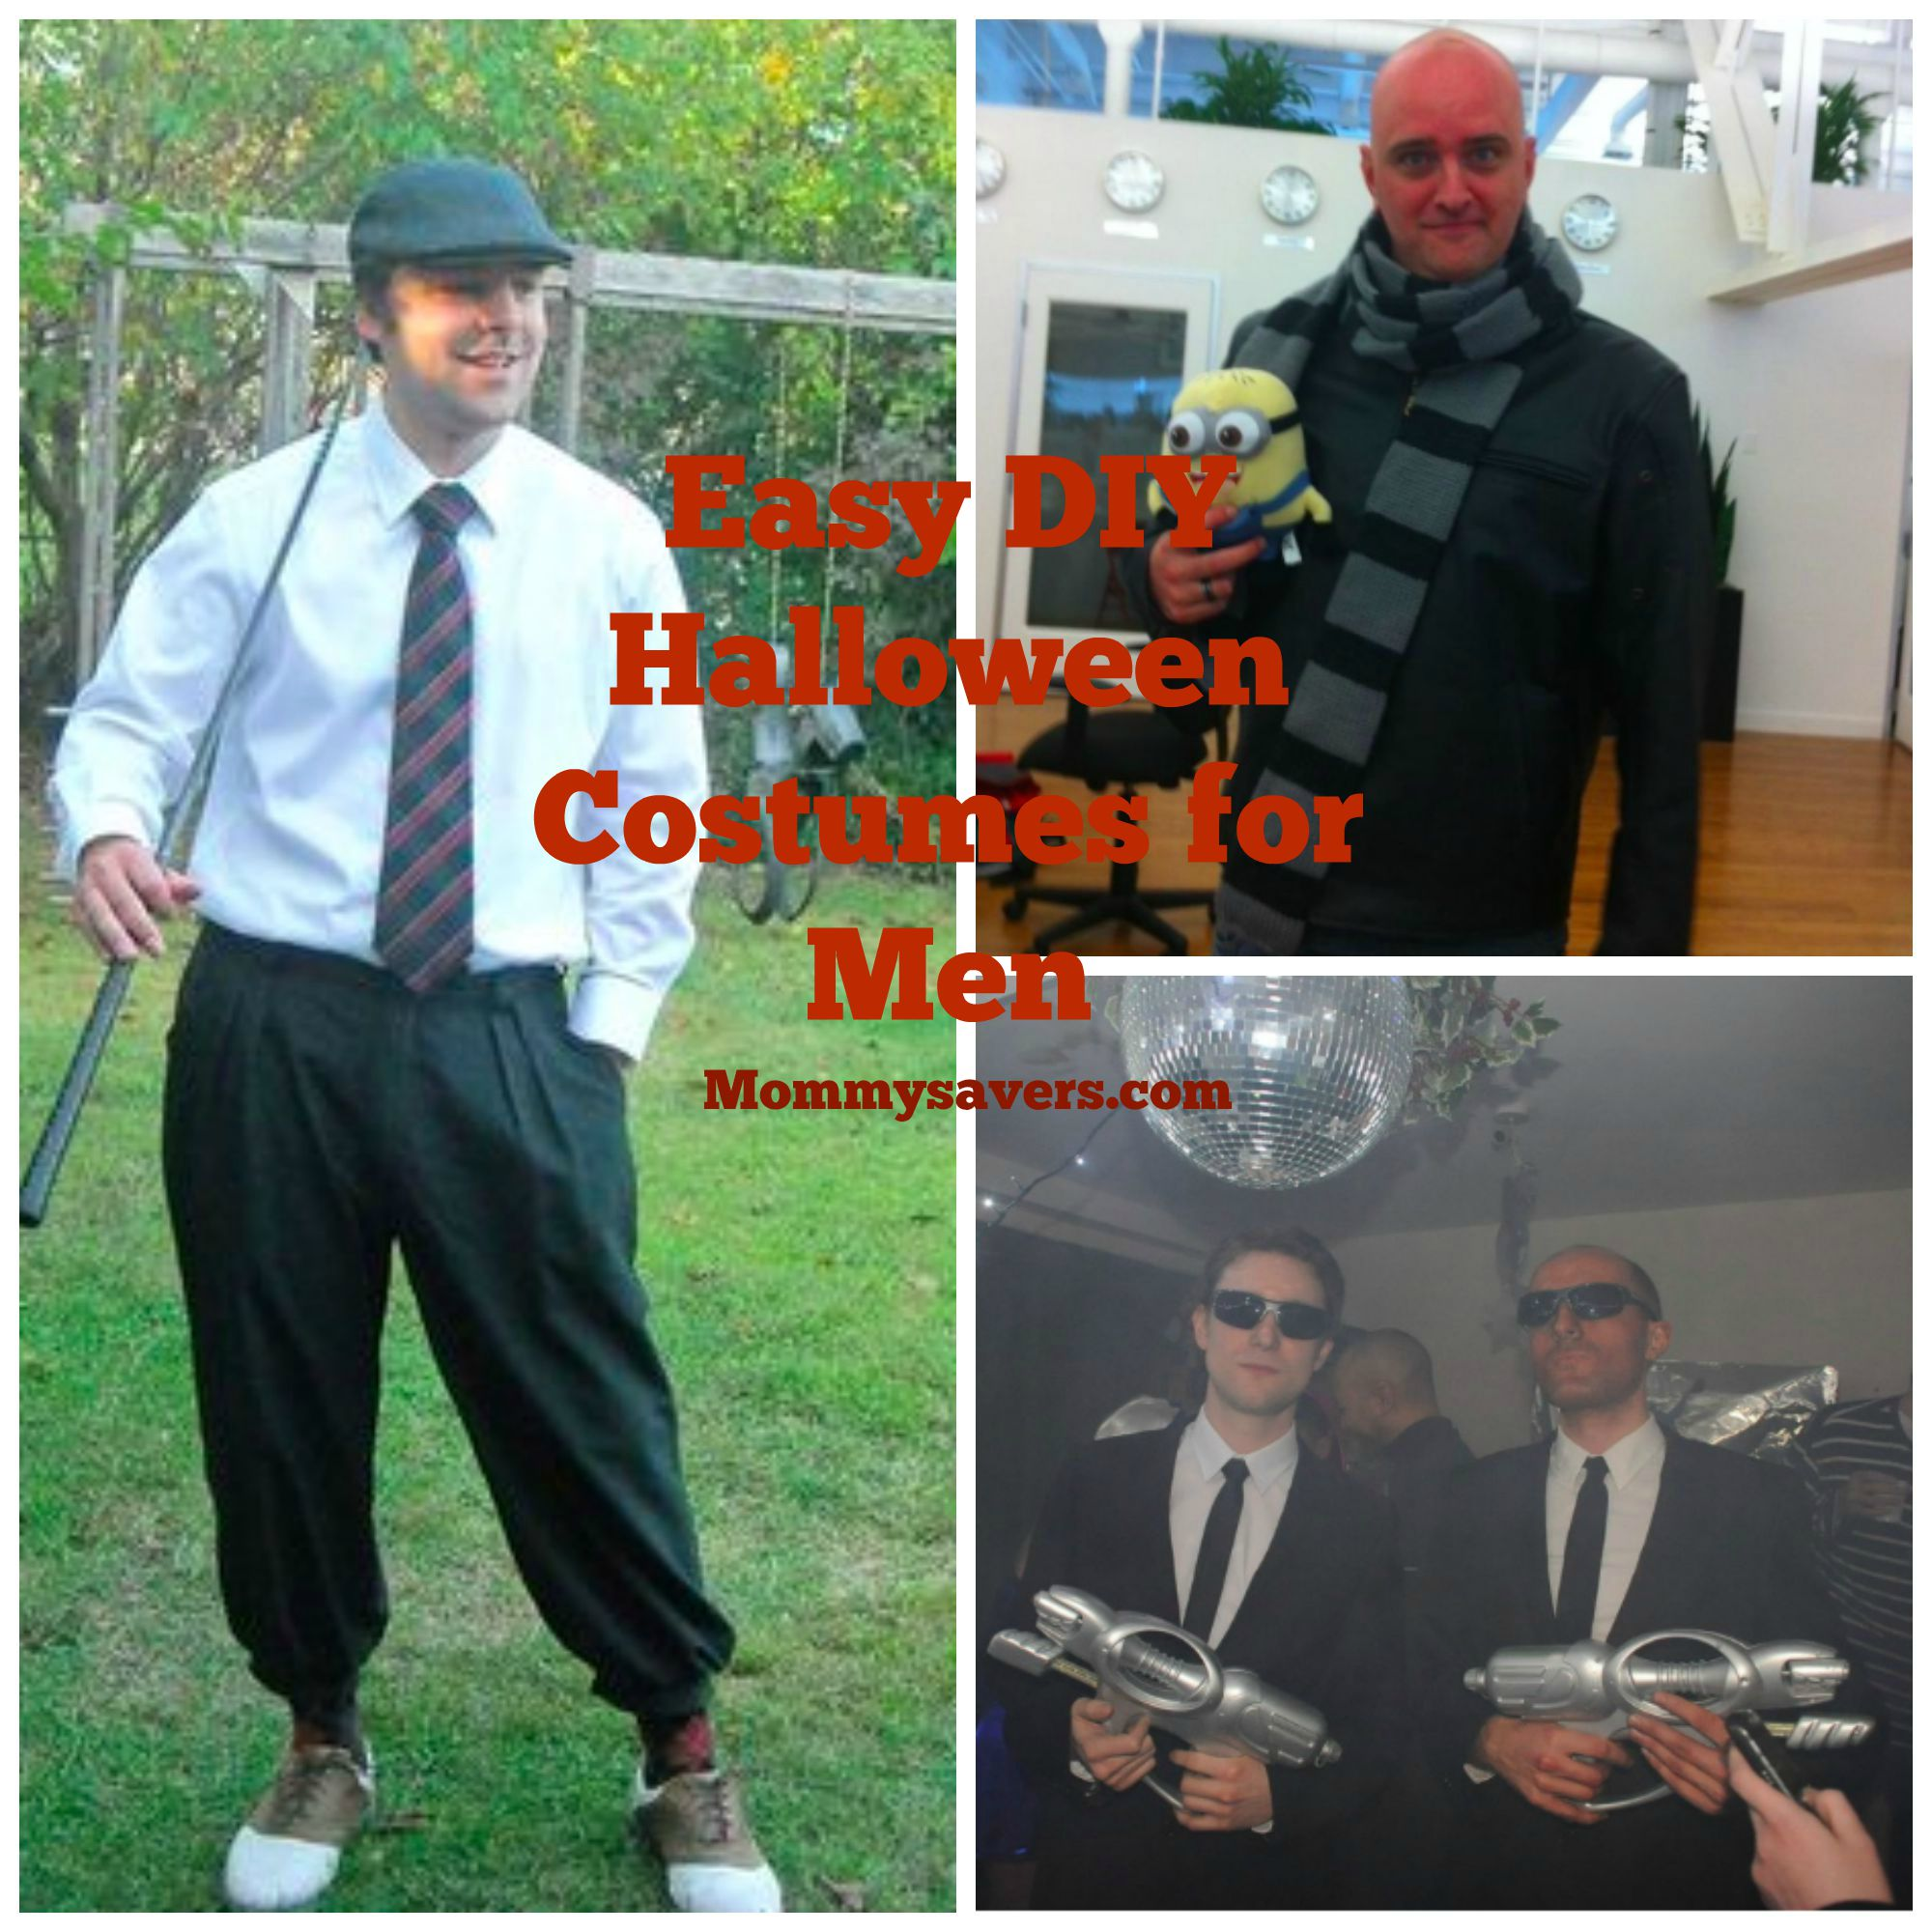 Diy easy halloween costume ideas for men mommysavers diy halloween costumes for men solutioingenieria Images